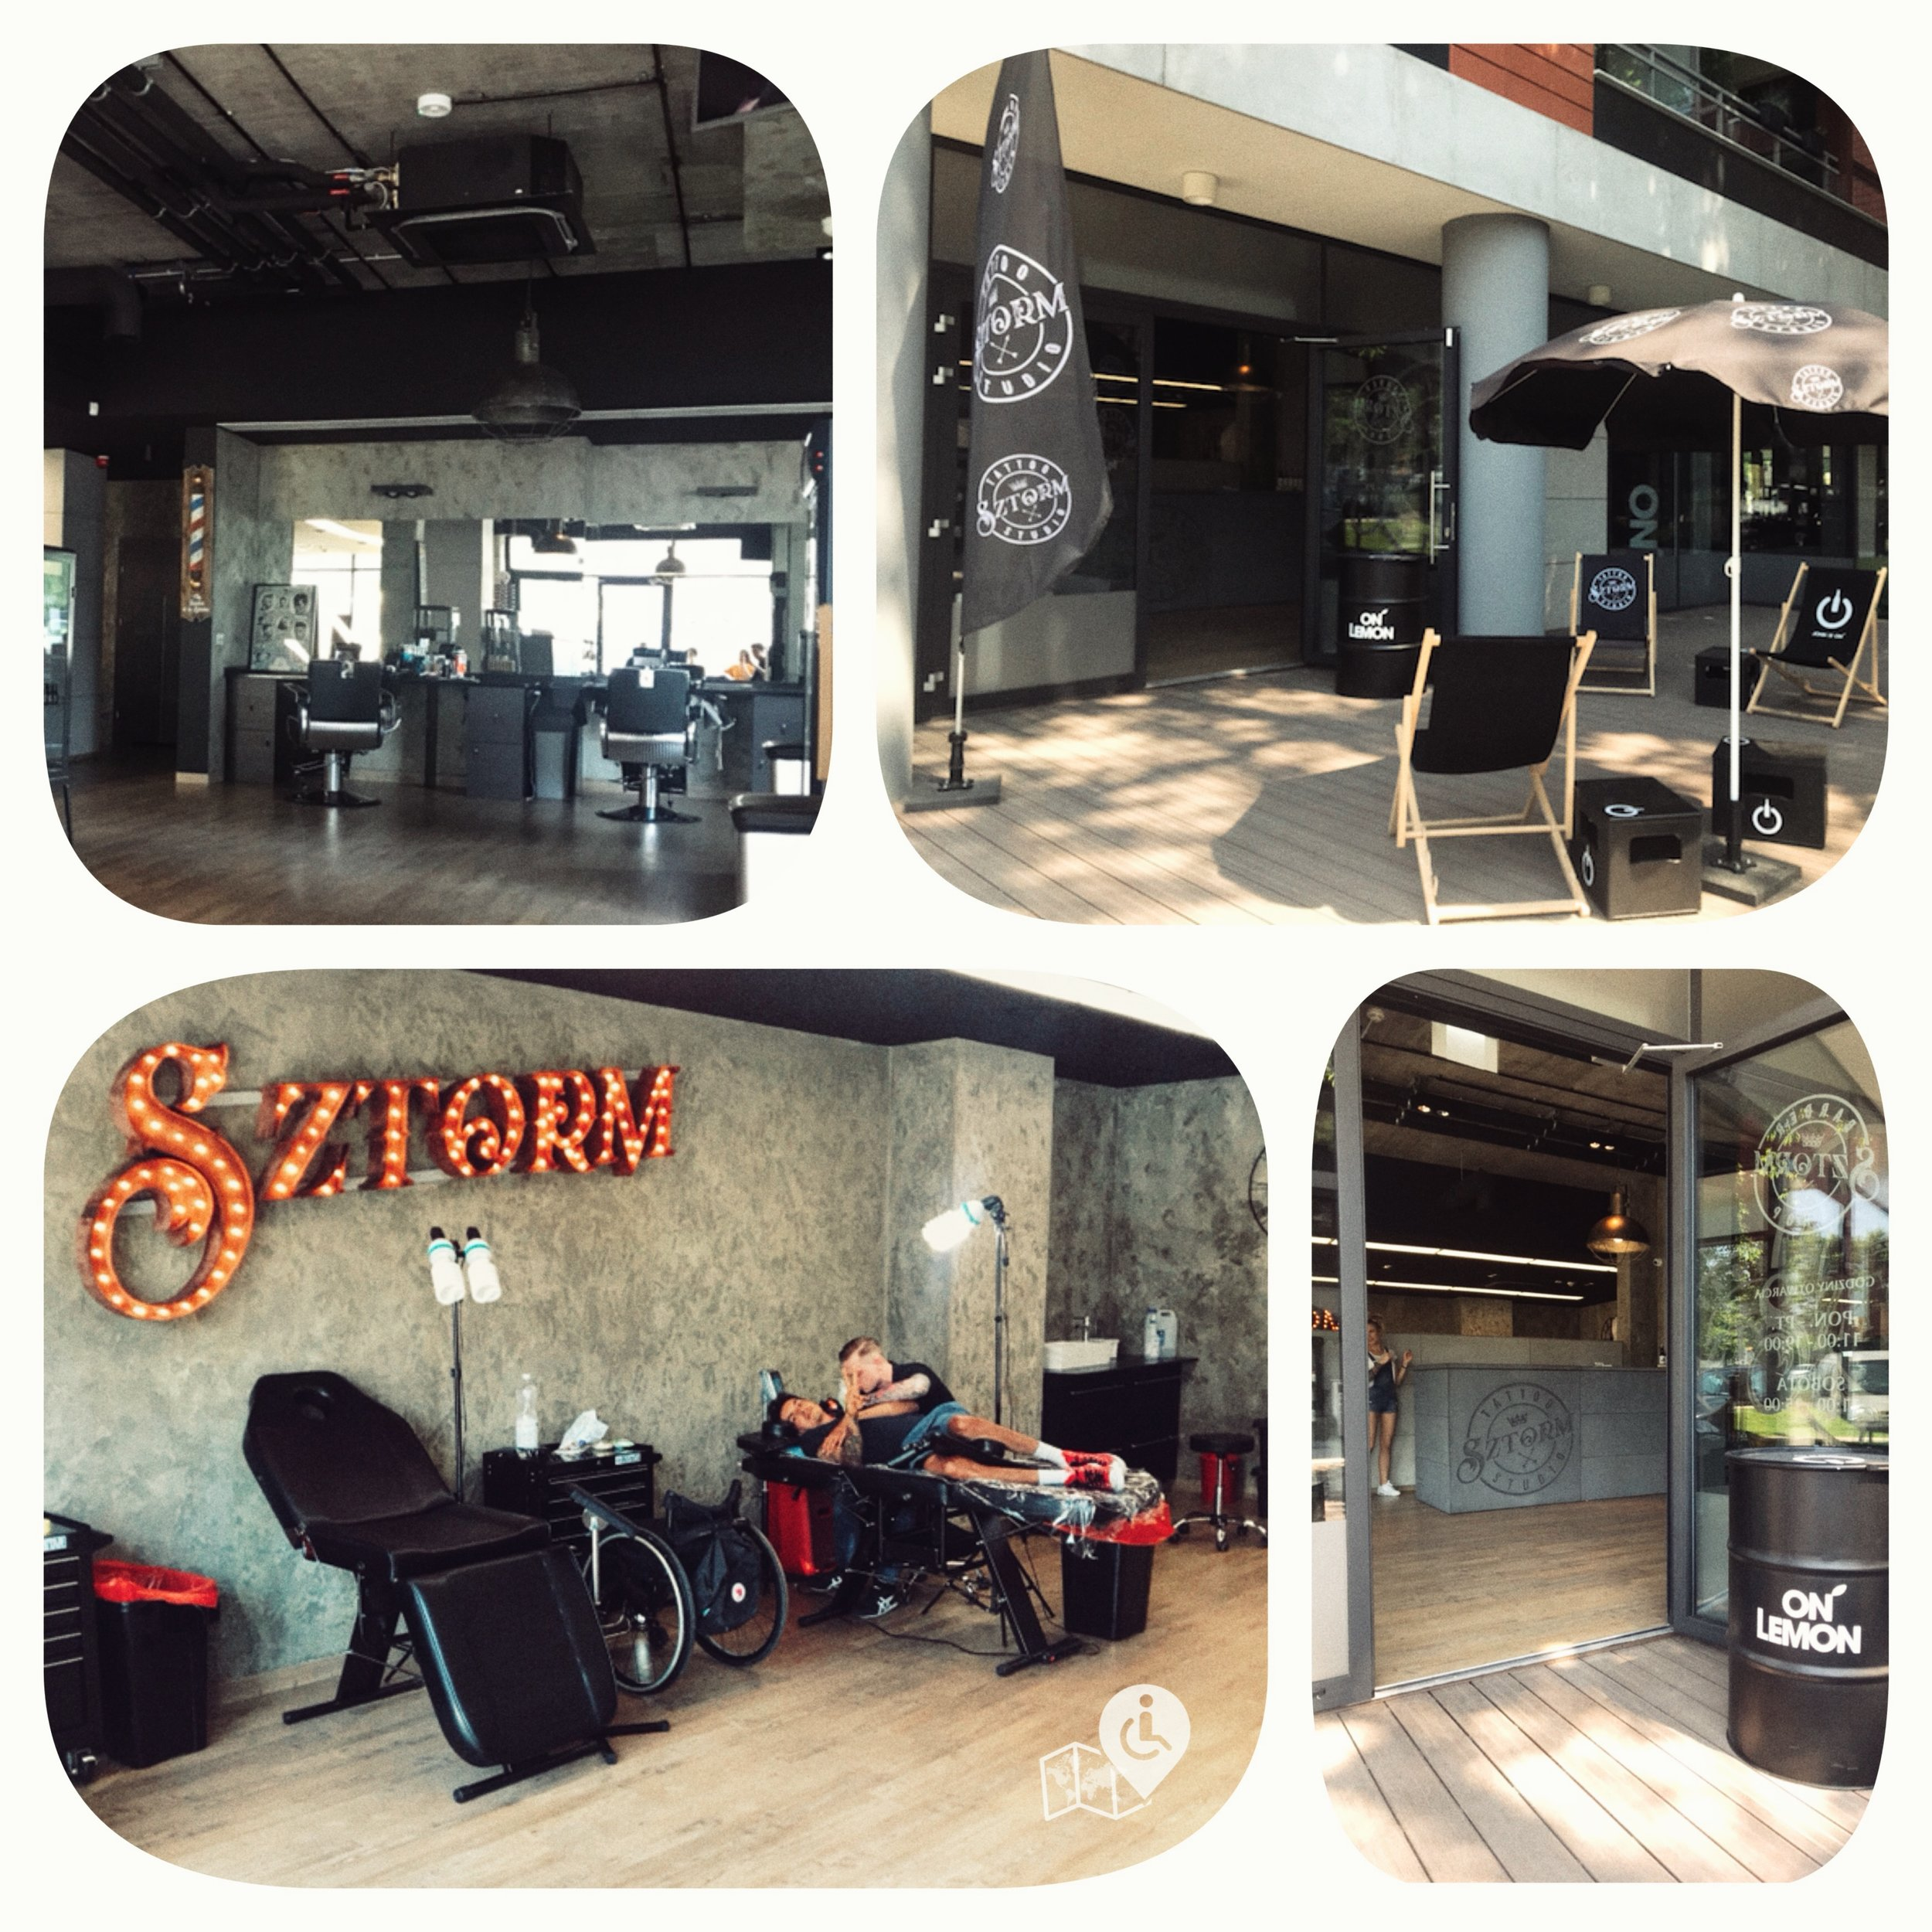 Fully-accessible tattoo studio in Gdansk